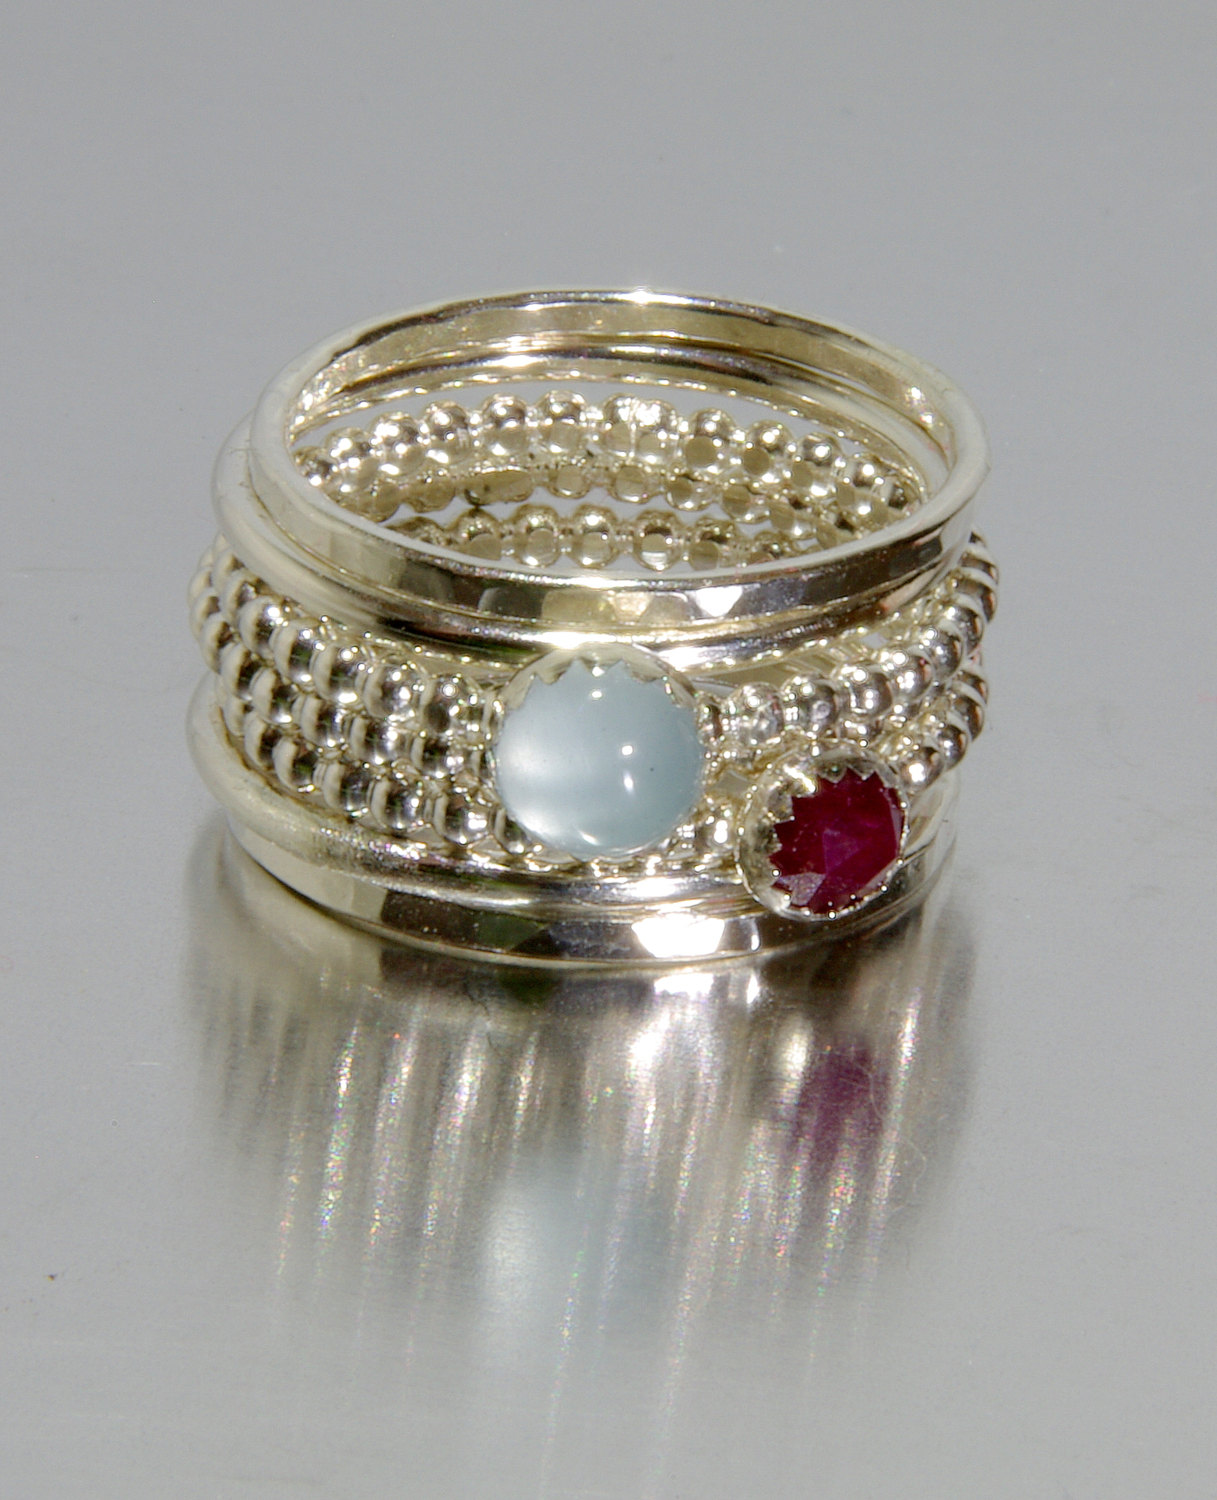 rings aquamarine birthstone heart silver blue droplet april ring light products image product aprdroplet march sterling